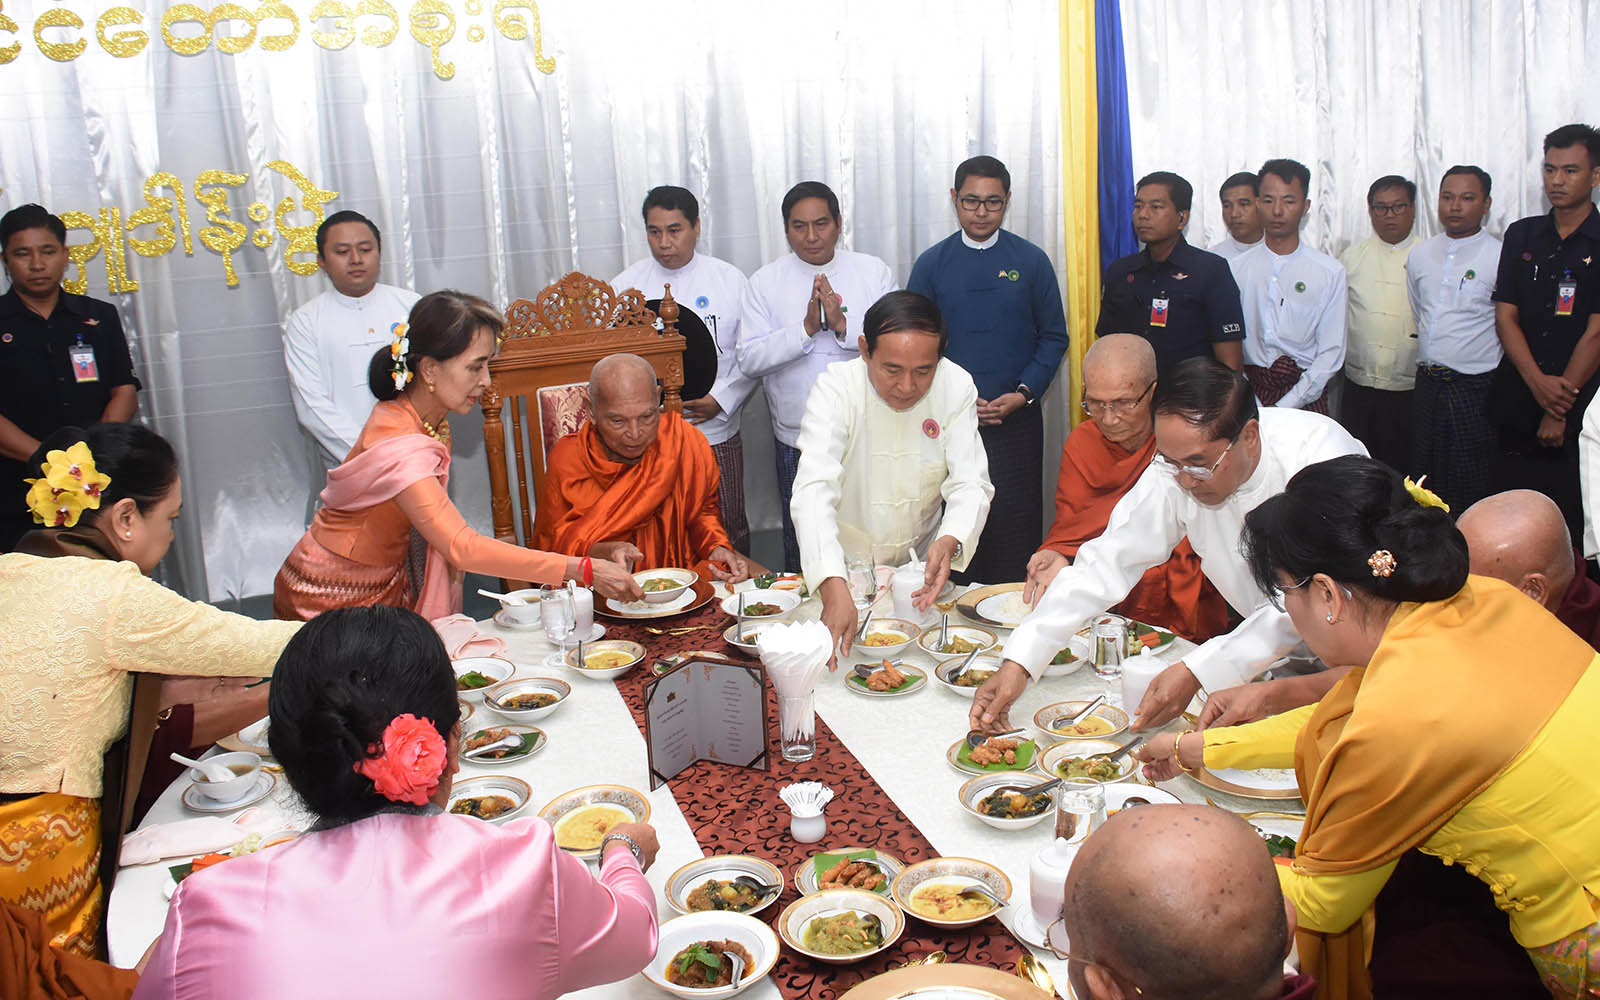 President U Win Myint, First Lady Daw Cho Cho, State Counsellor Daw Aung San Suu Kyi and congregation offering 'soon' to Sayadaws as part of the Waso robe offering ceremony in Nay Pyi Taw.  Photo: MNA